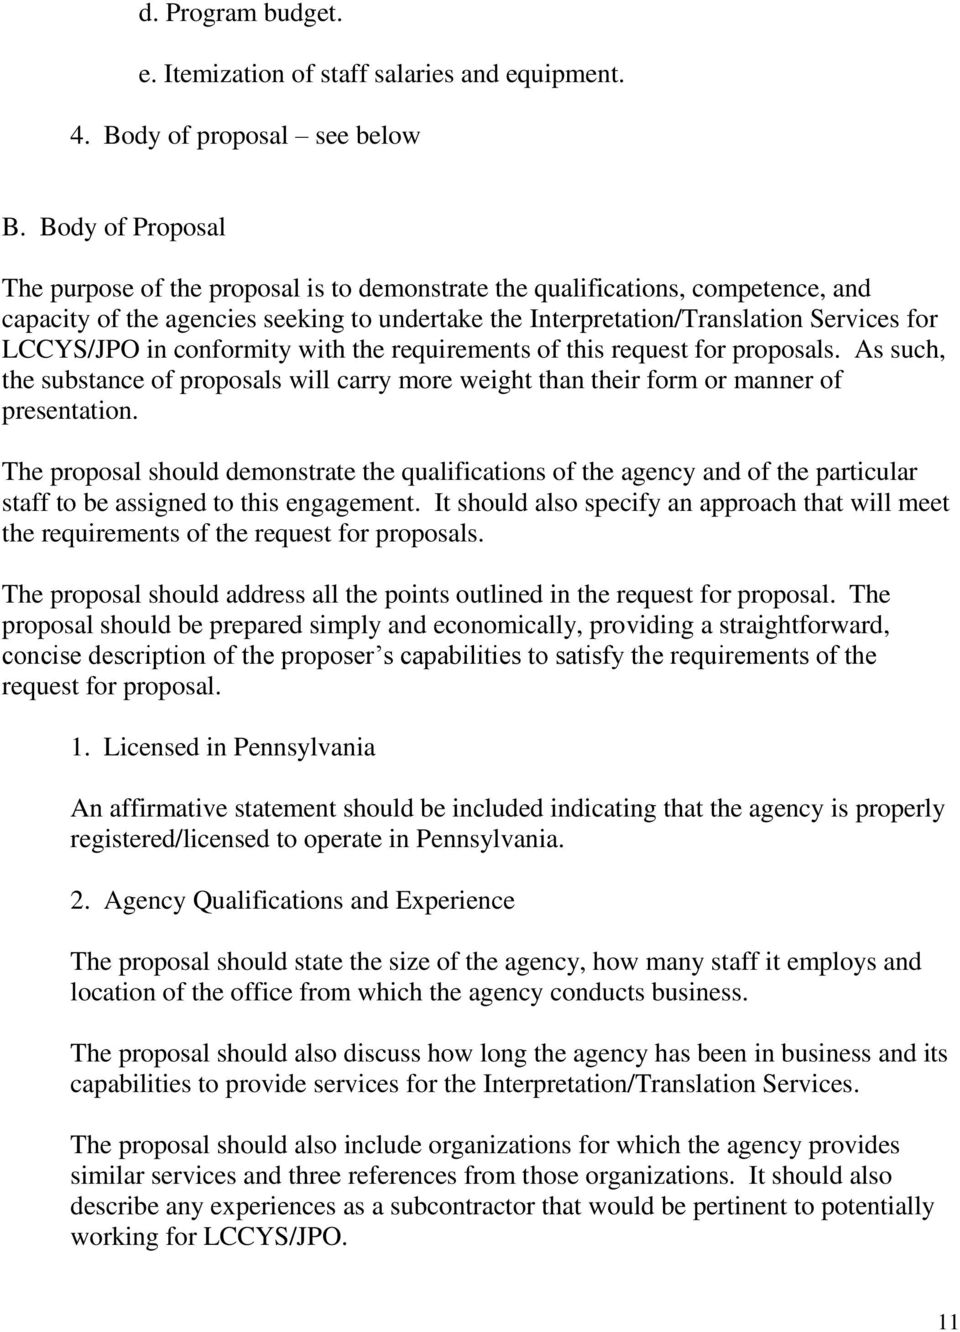 in conformity with the requirements of this request for proposals. As such, the substance of proposals will carry more weight than their form or manner of presentation.